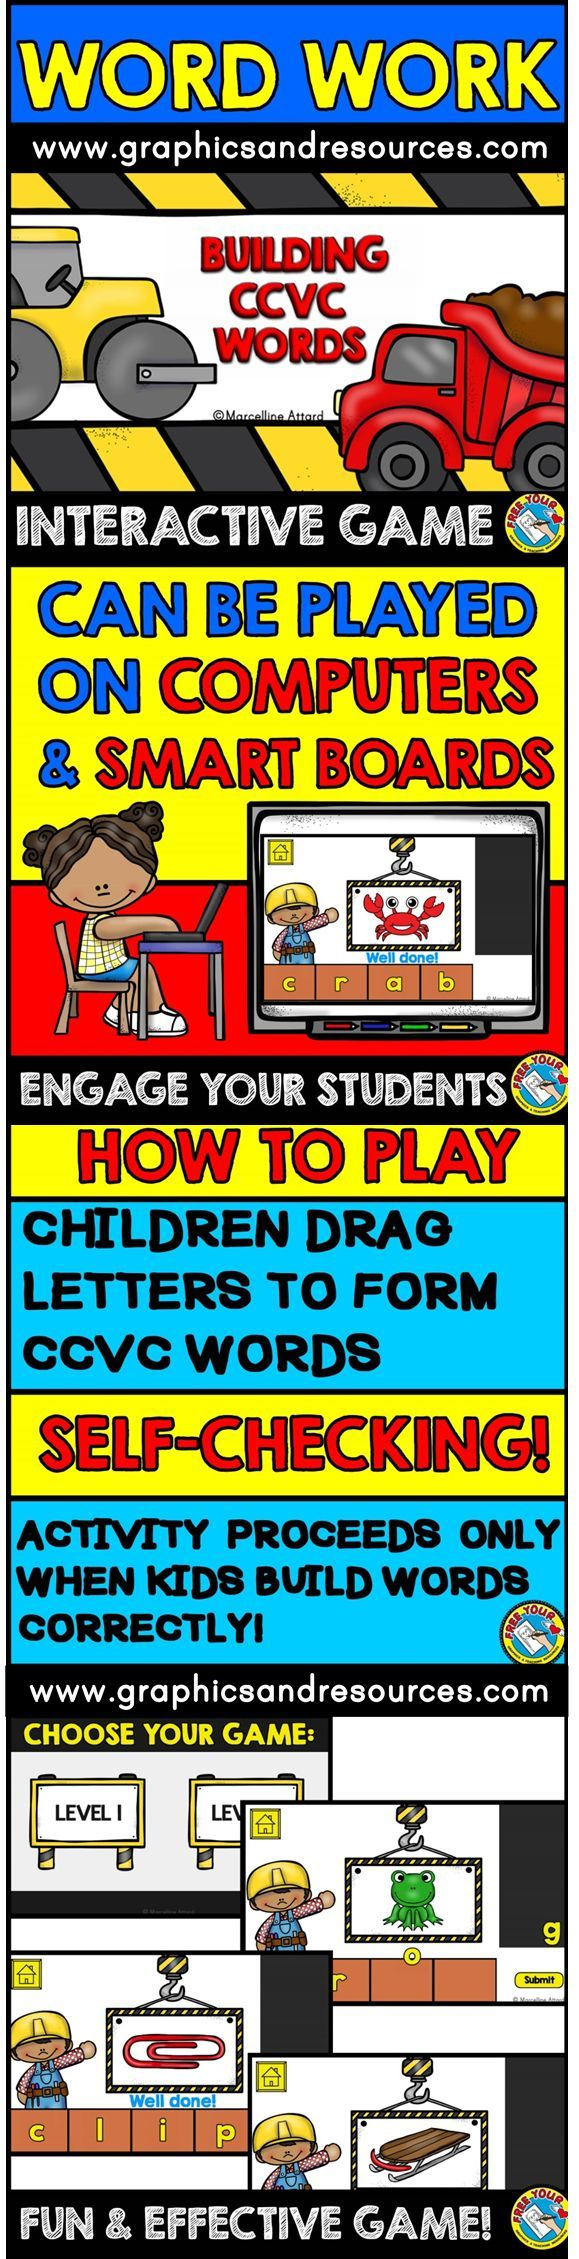 A simple and engaging game for children to practice building ccvc words. This game is designed to be used on a computer or interactive whiteboard. Children drag letters onto the bricks to form the word for each ccvc picture. Then they click on 'Submit' button to check if they formed the word correctly or not.  Click to view resource!